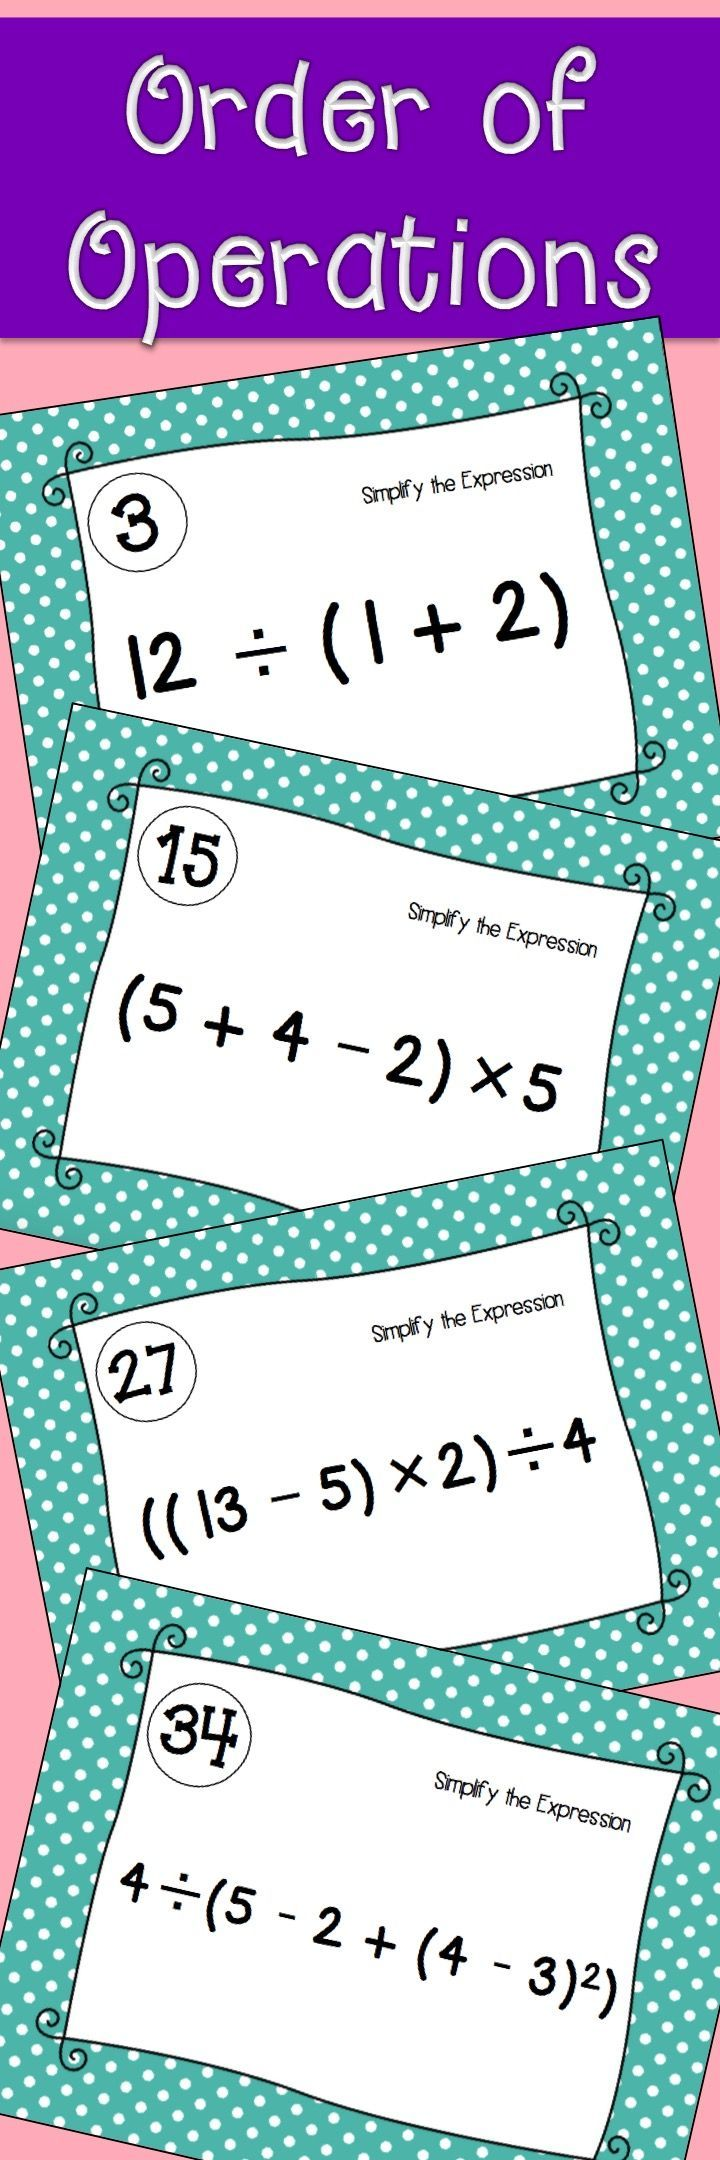 27 best Middle school Maths images on Pinterest   Middle school ...